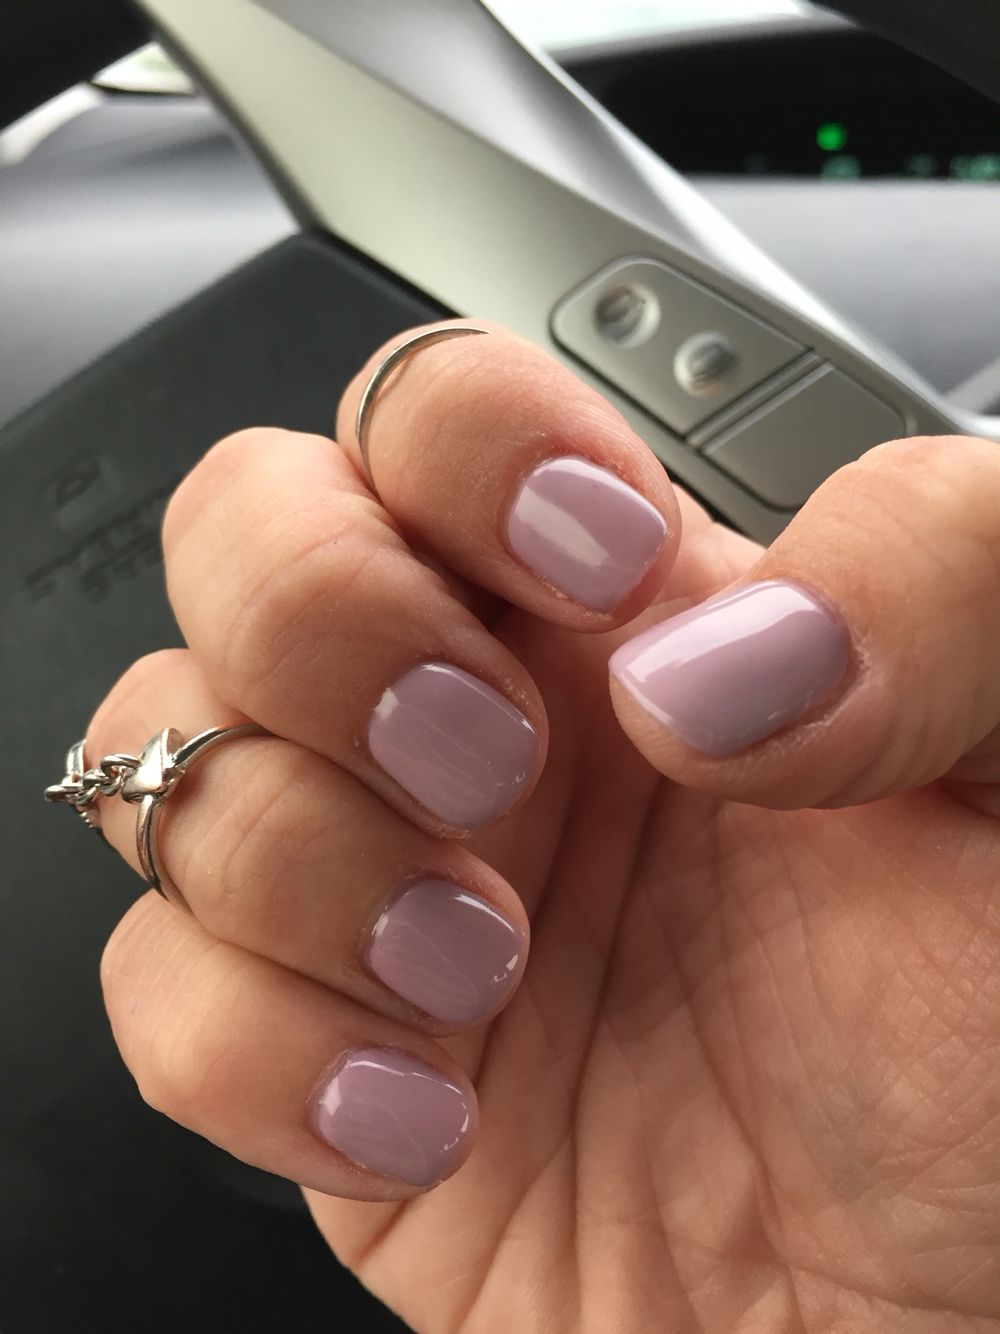 Fall gel nails | Nails | Pinterest | Fall gel nails, Makeup and Nail ...